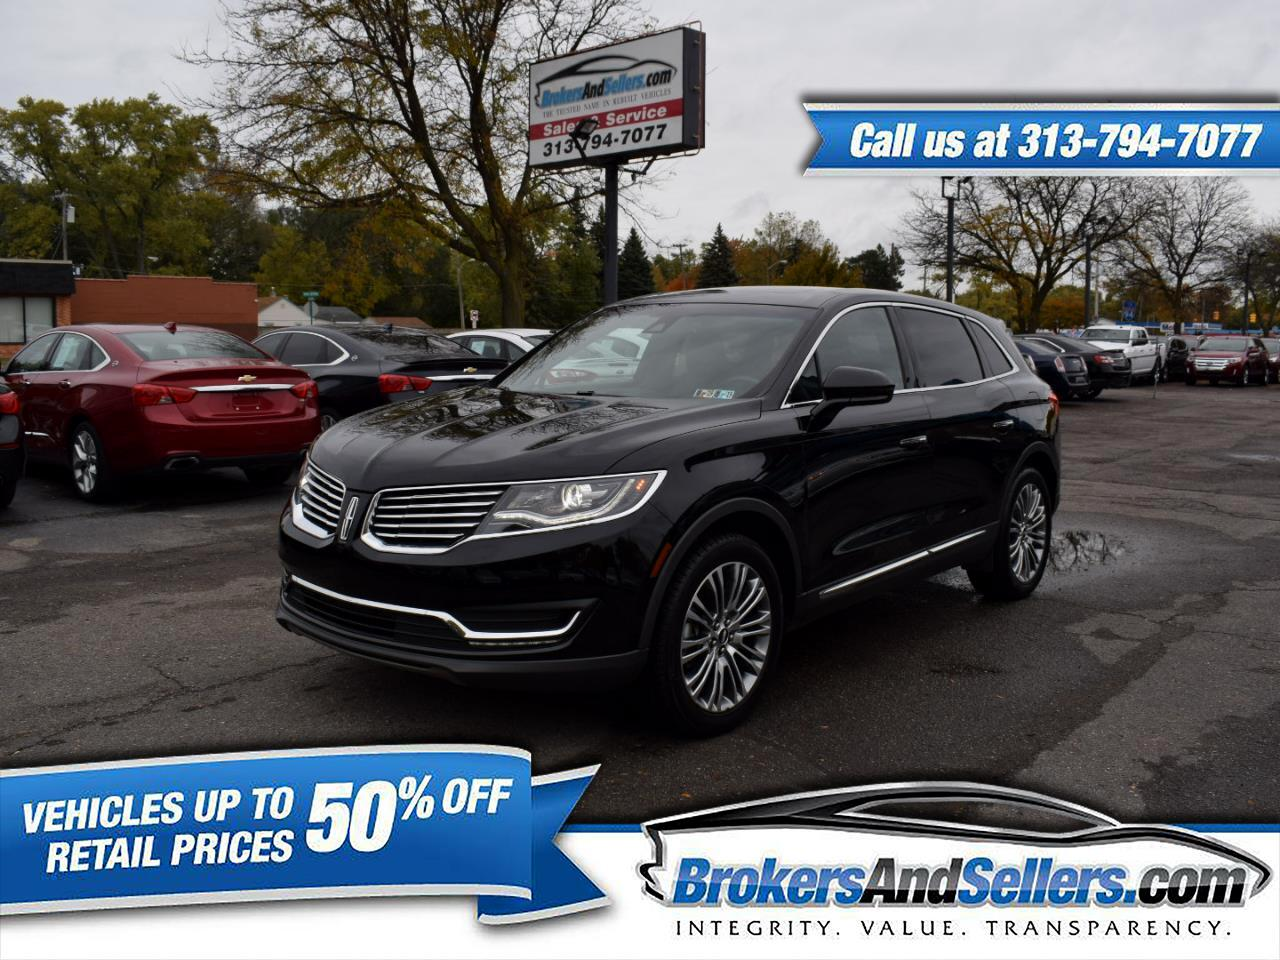 Used Cars For Sale Taylor Mi 48180 2007 Mkx Fuel Filter 2017 Lincoln Reserve Awd